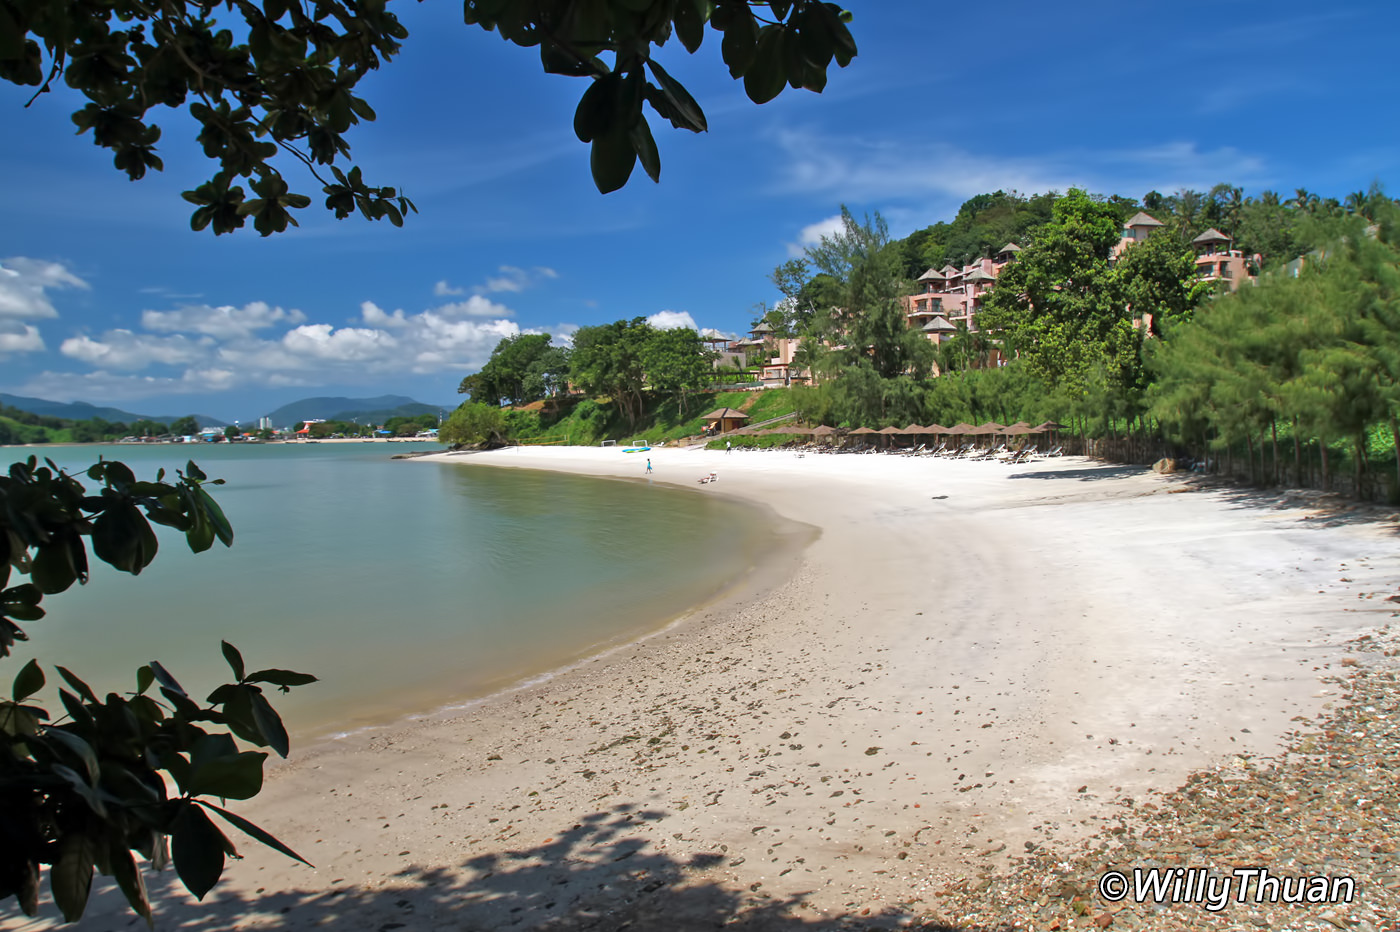 Westin Sirey Bay Resort on Koh Sirey